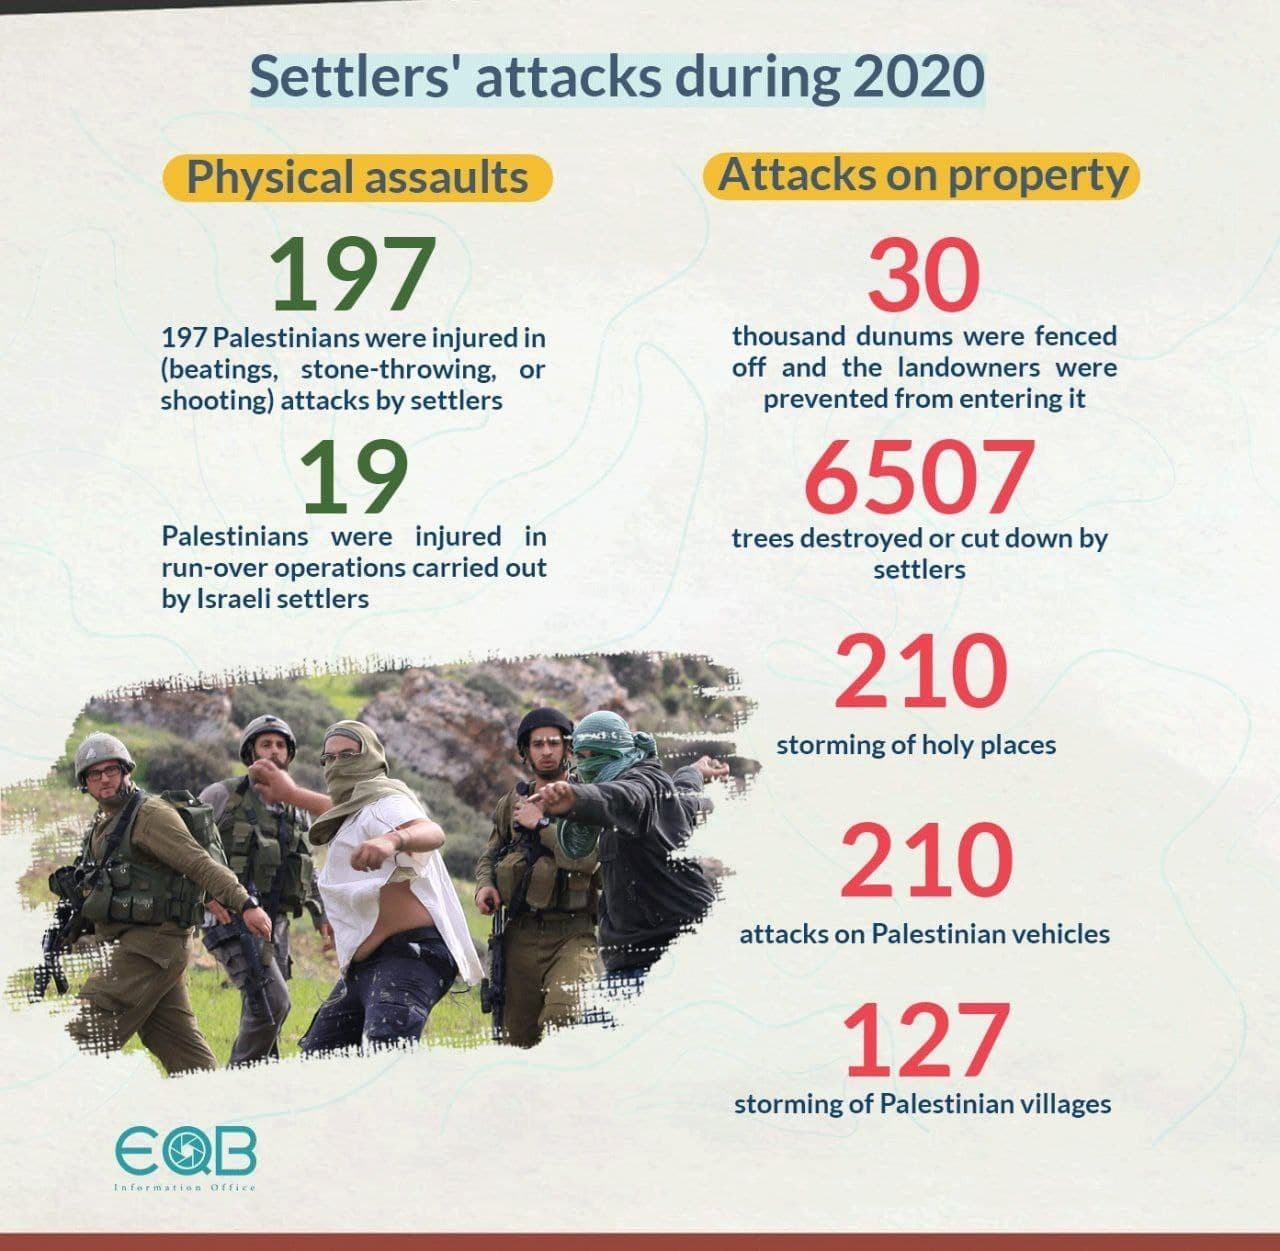 Israeli settlers' attacks during 2020